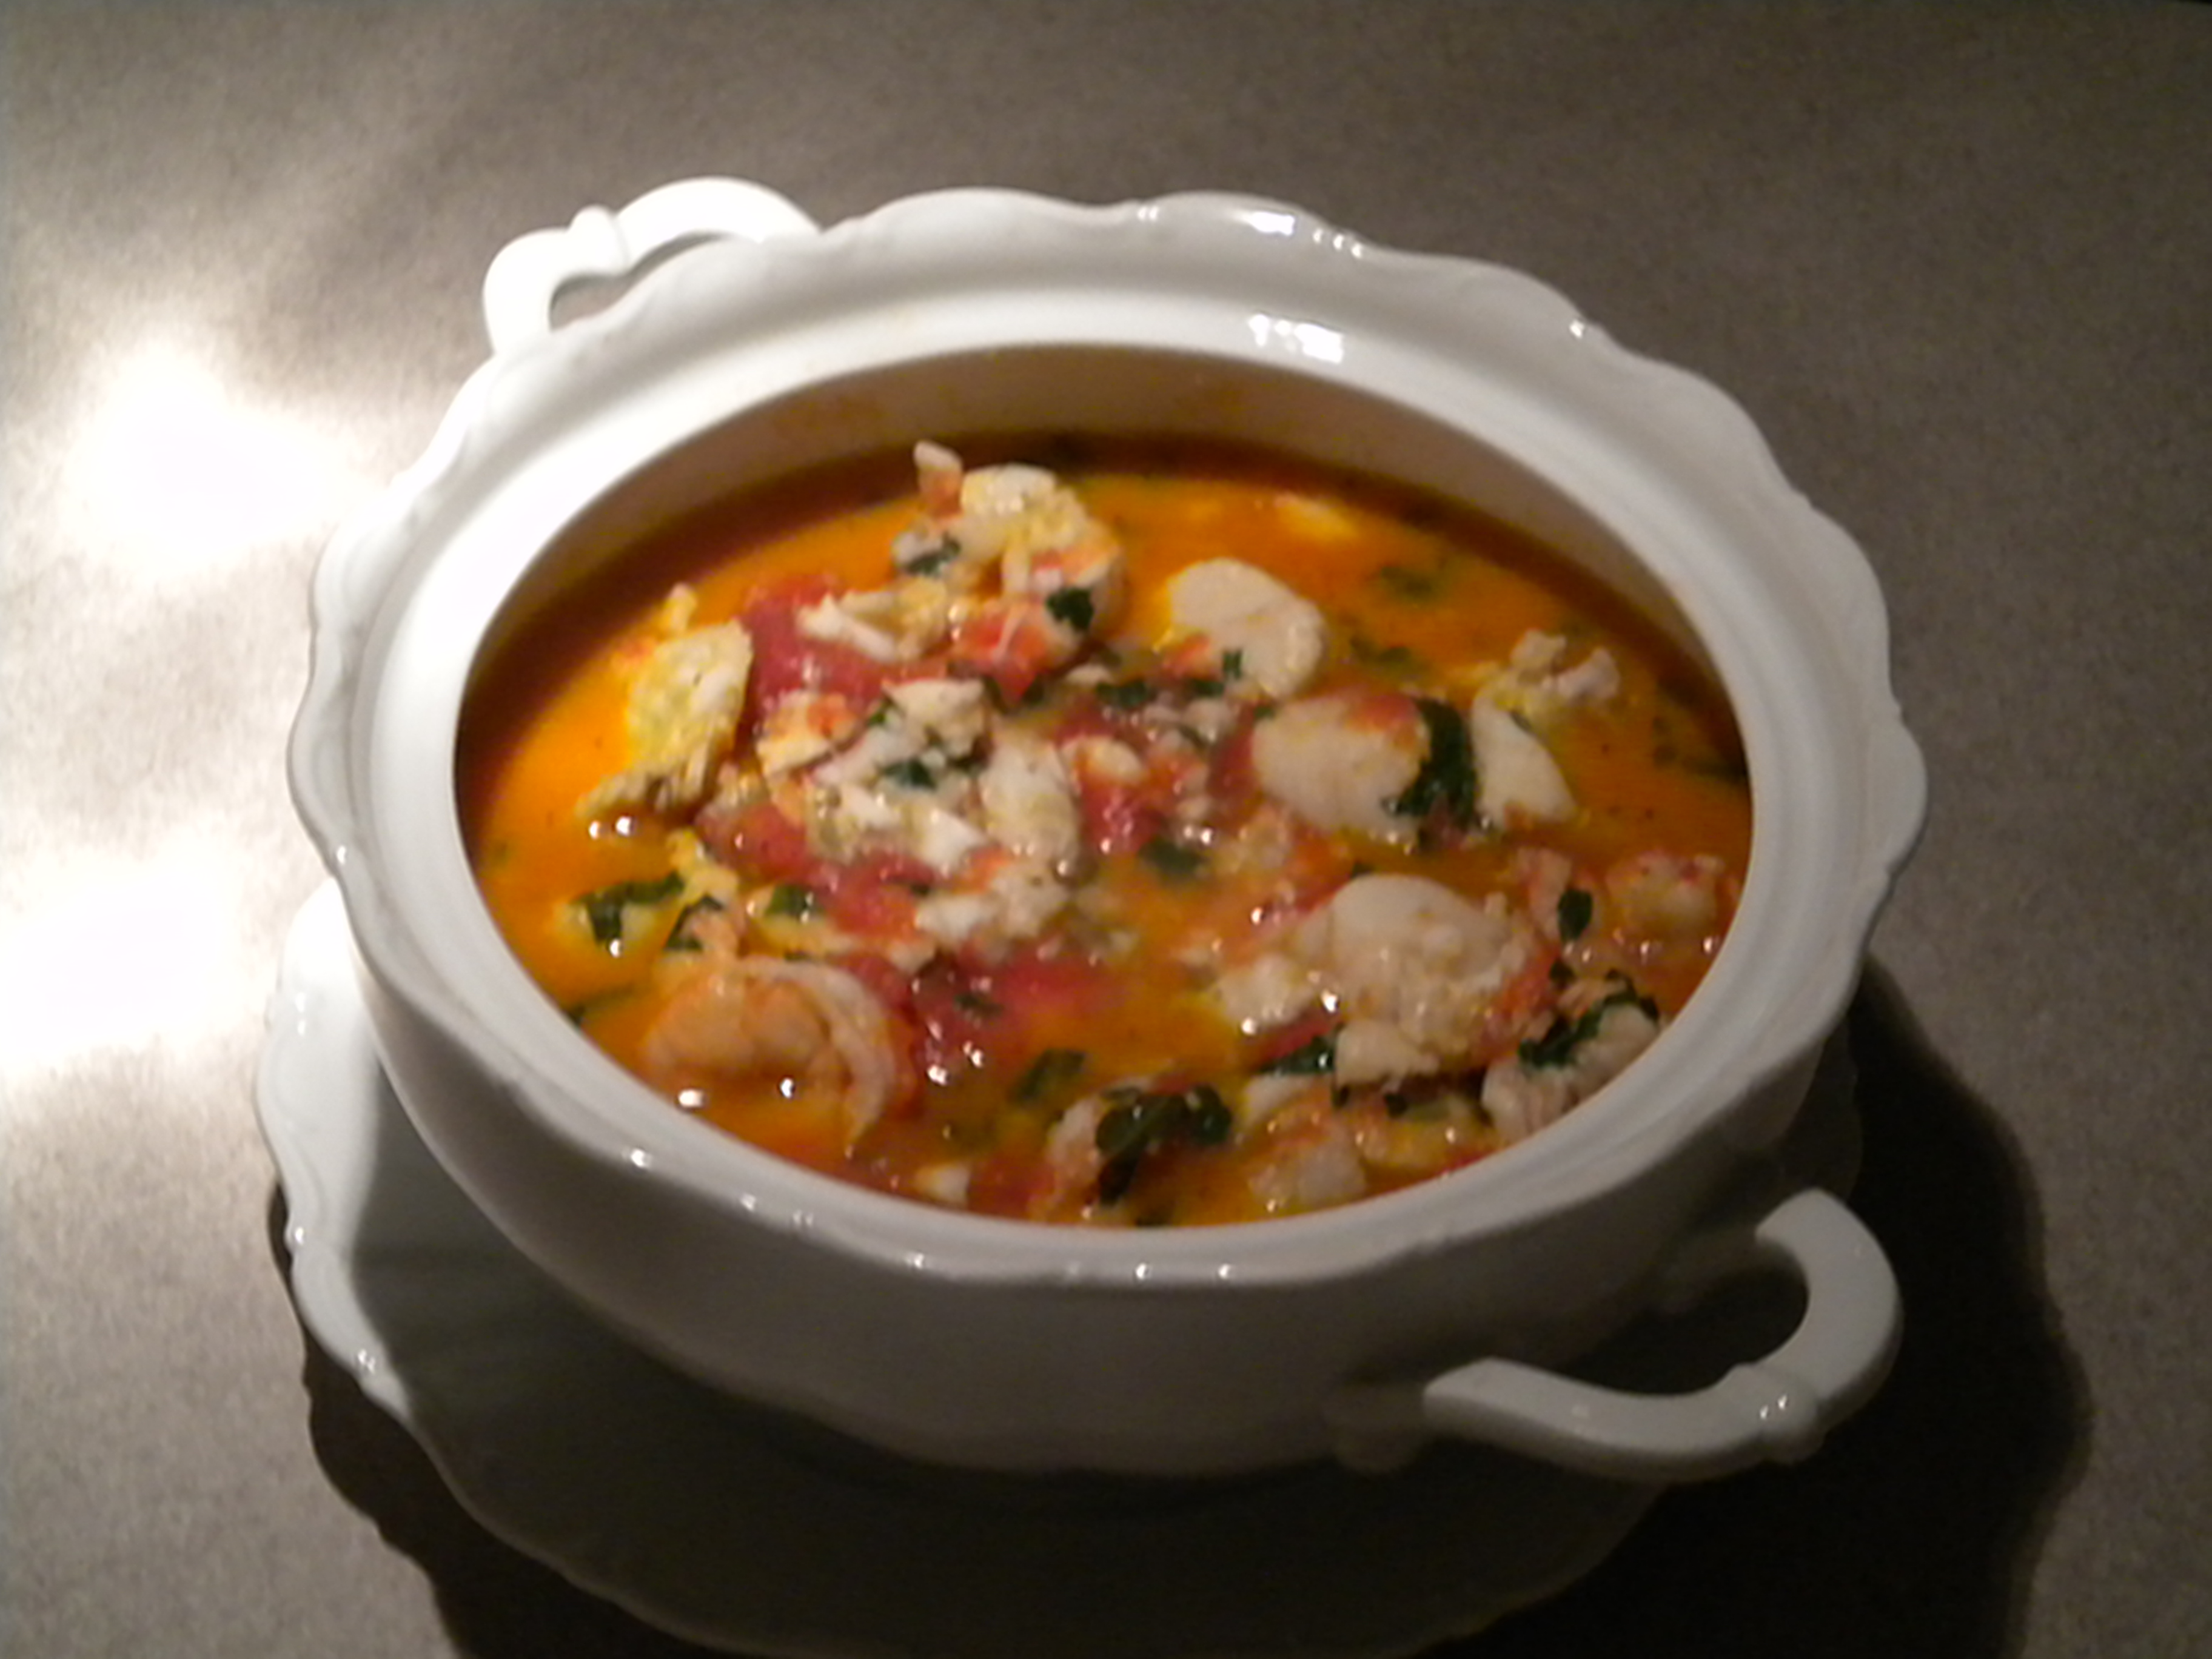 Dad's Favorite Seafood Stew